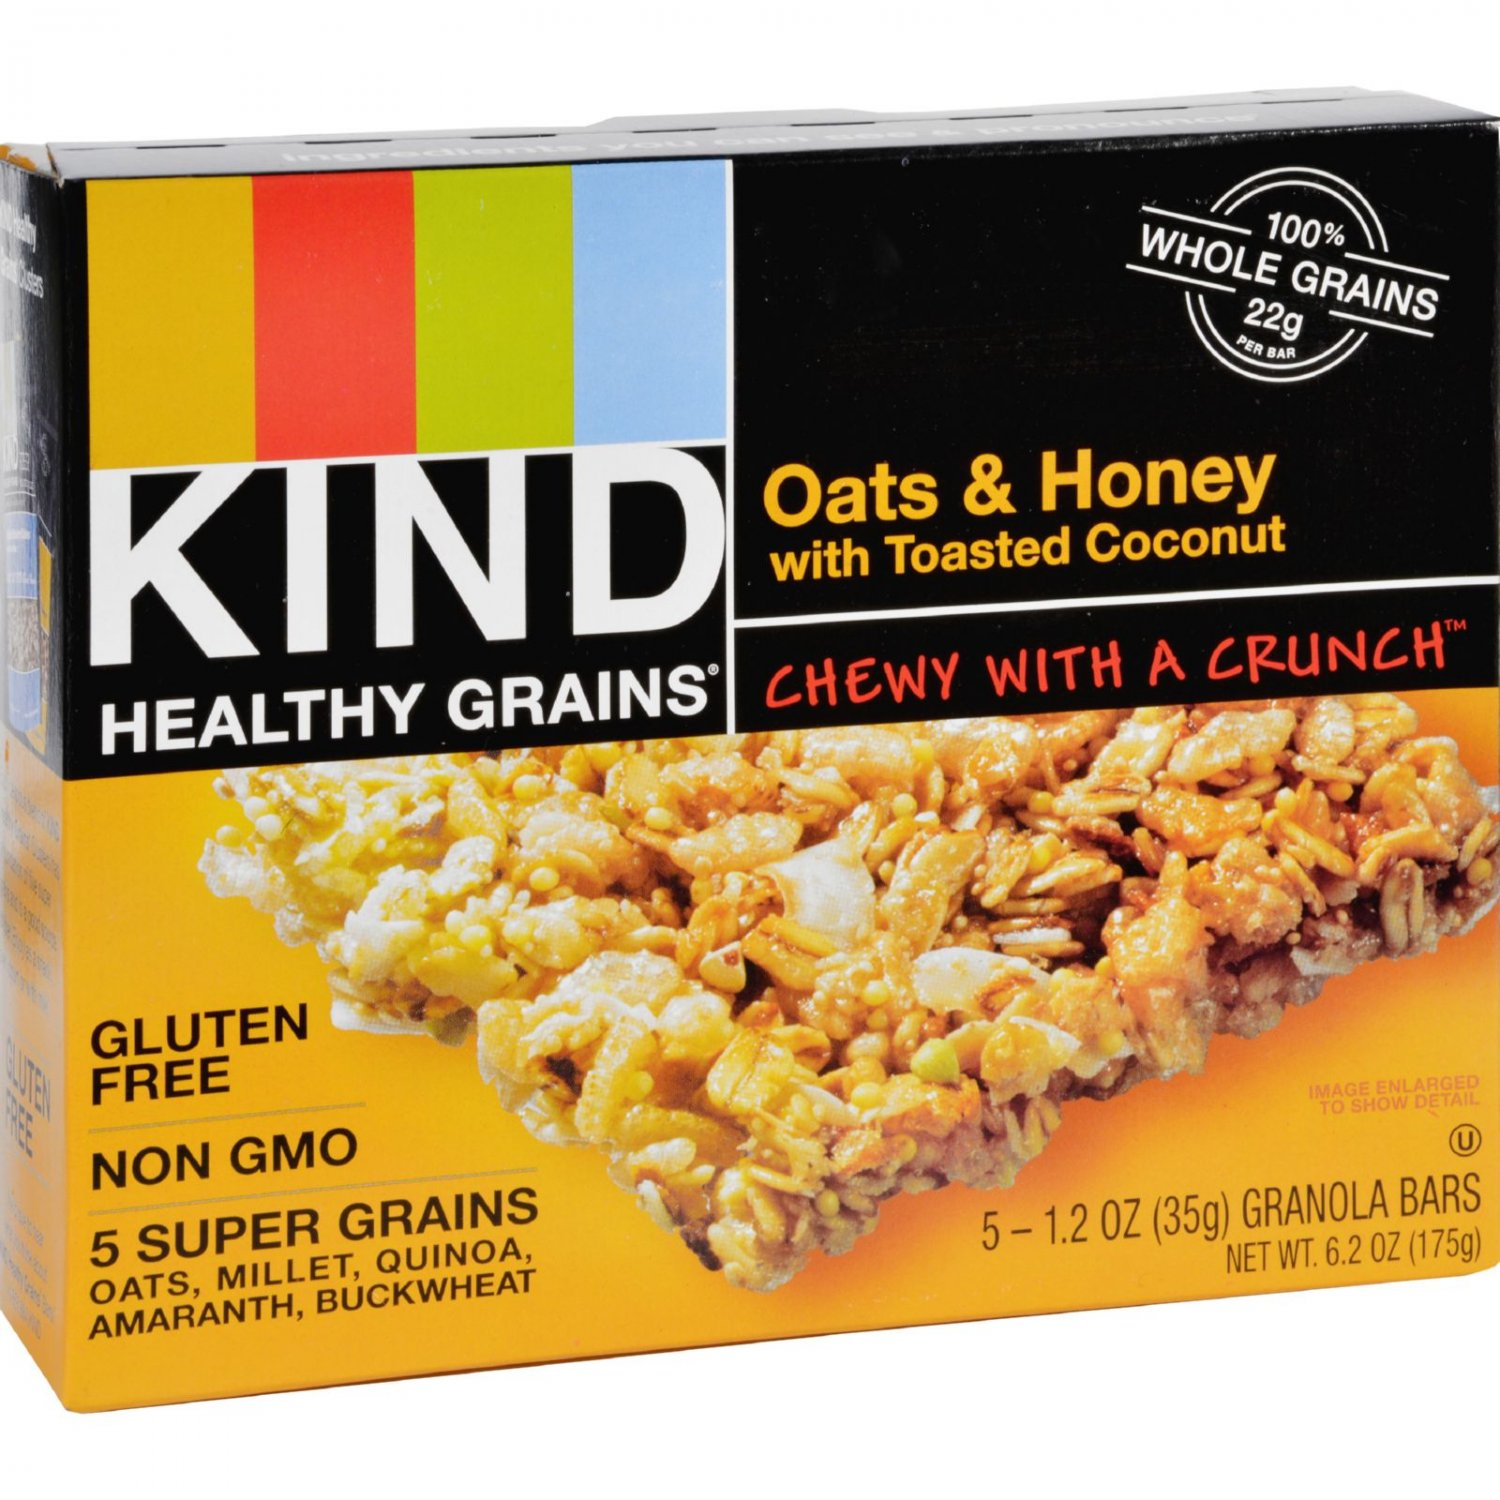 Kind Bar - Granola - Healthy Grains - Oats and Honey with Toasted Coconut - 1.2 oz - 5 Count - Case